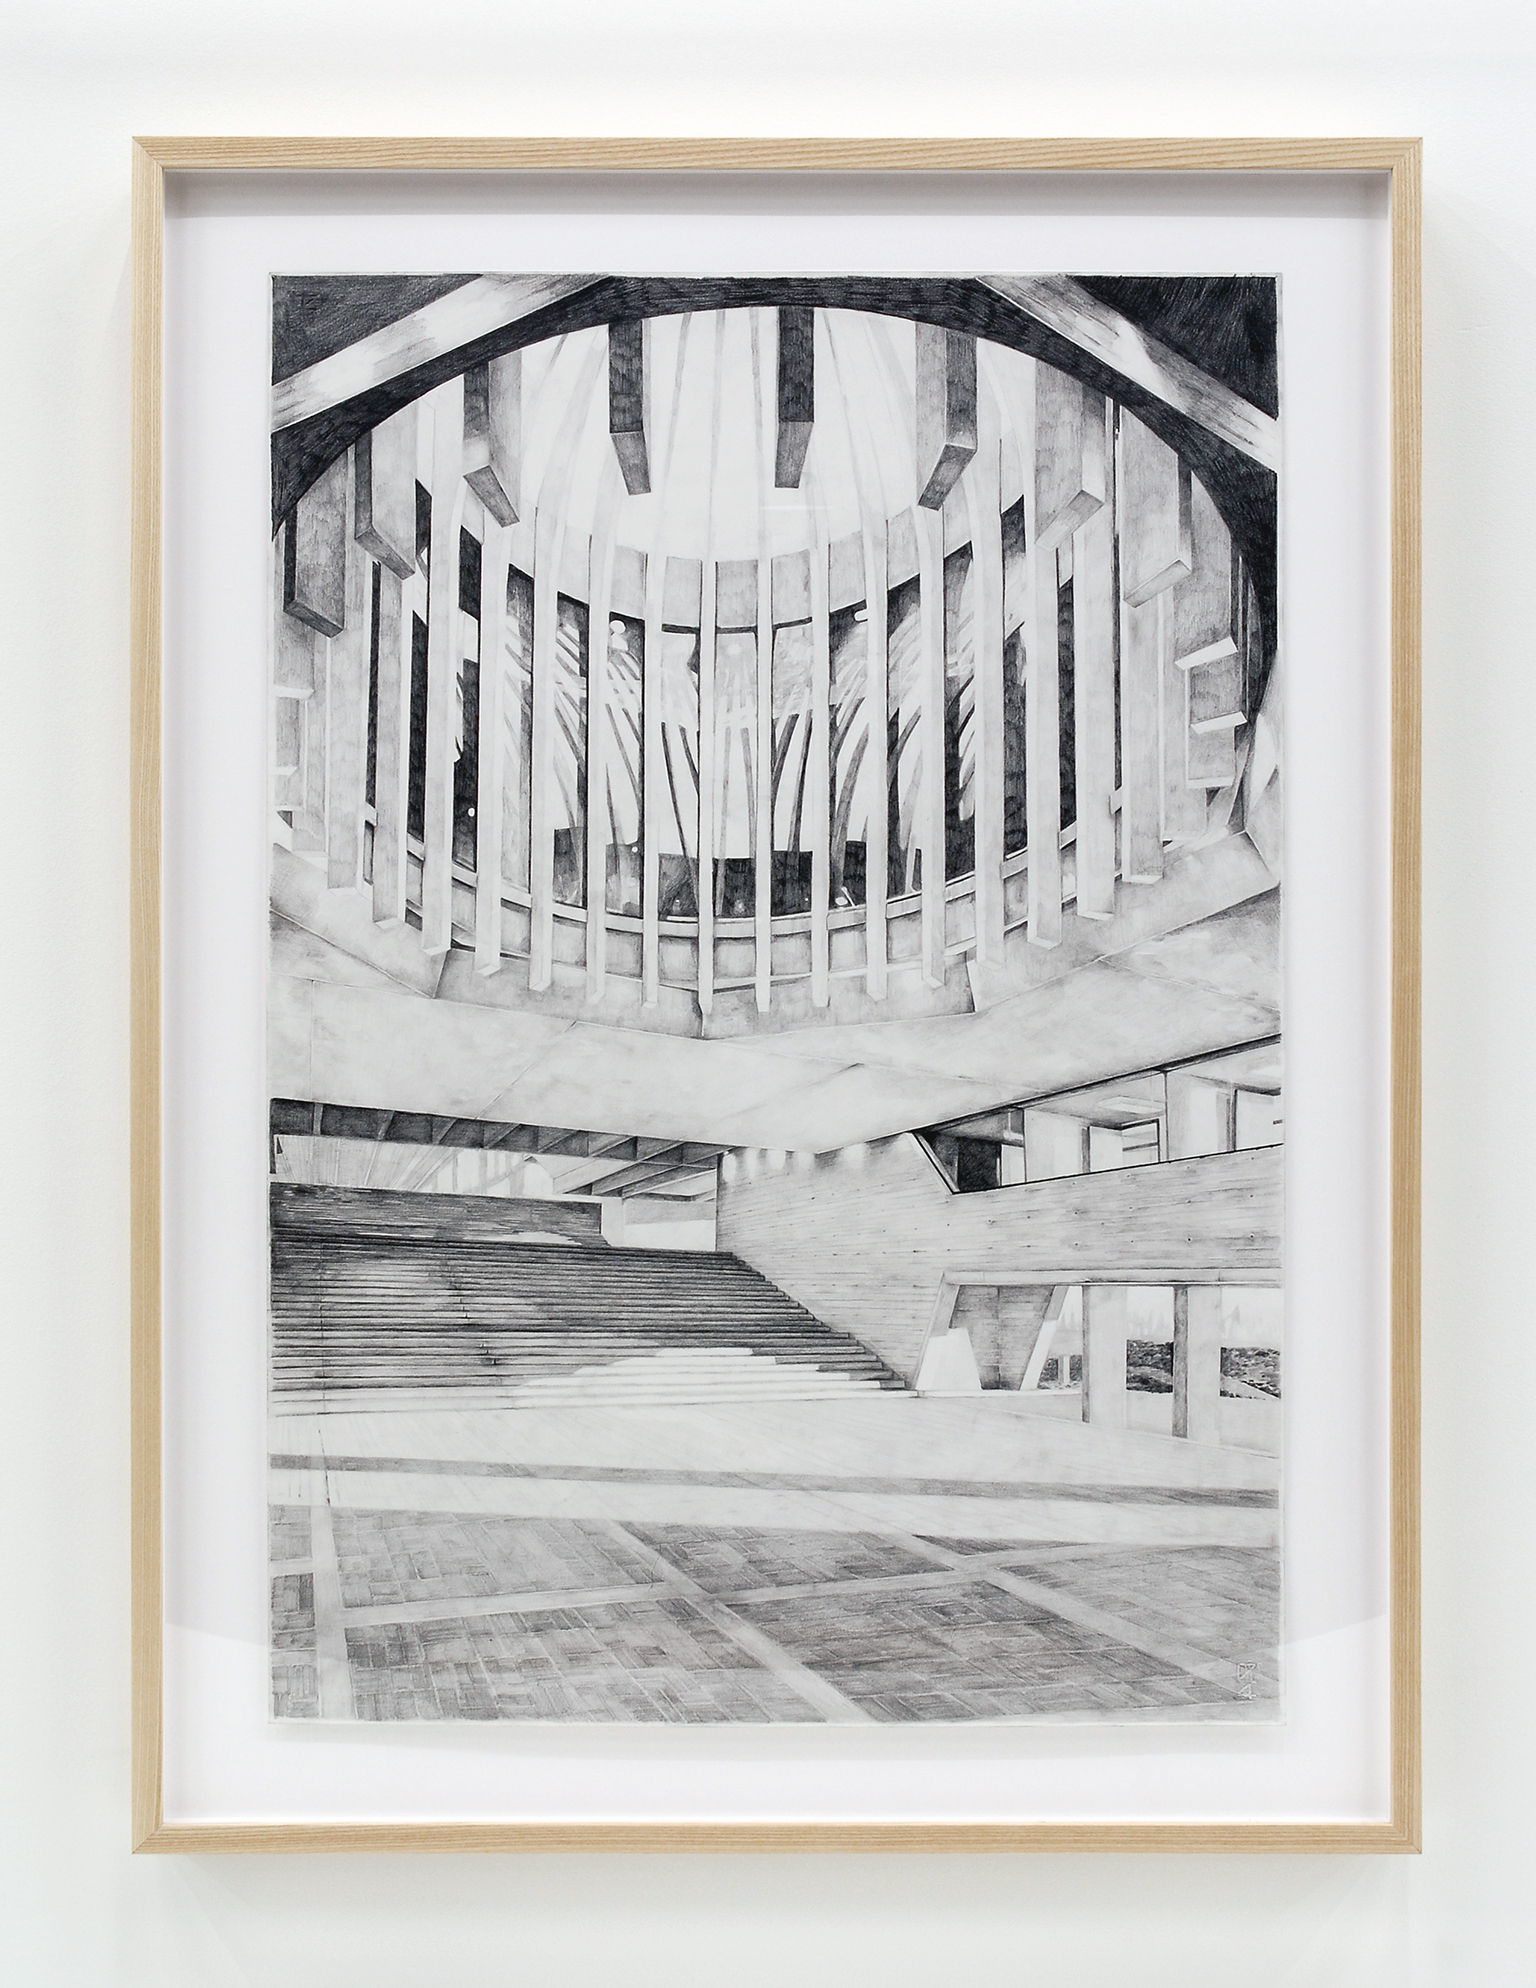 Alex Morrison, The Poetics of Grey (No. 12), 2007, graphite on paper, 46 x 35 in. (118 x 88 cm) by